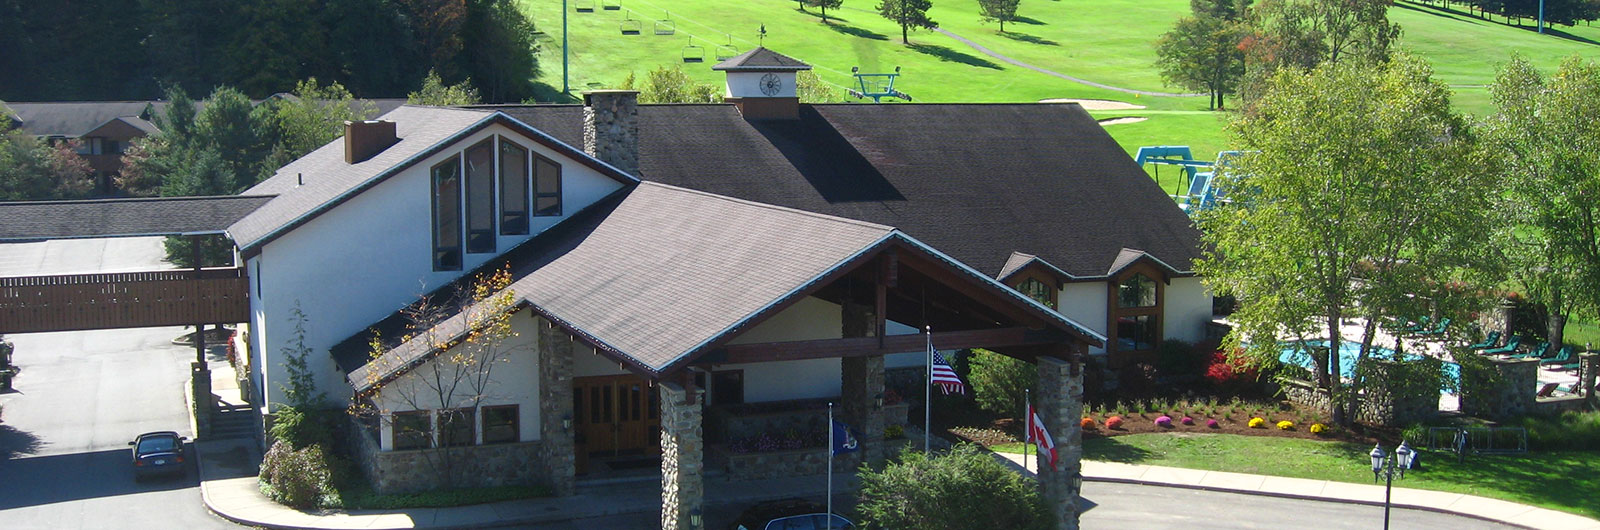 aerial view of Inn entrance in the summertime